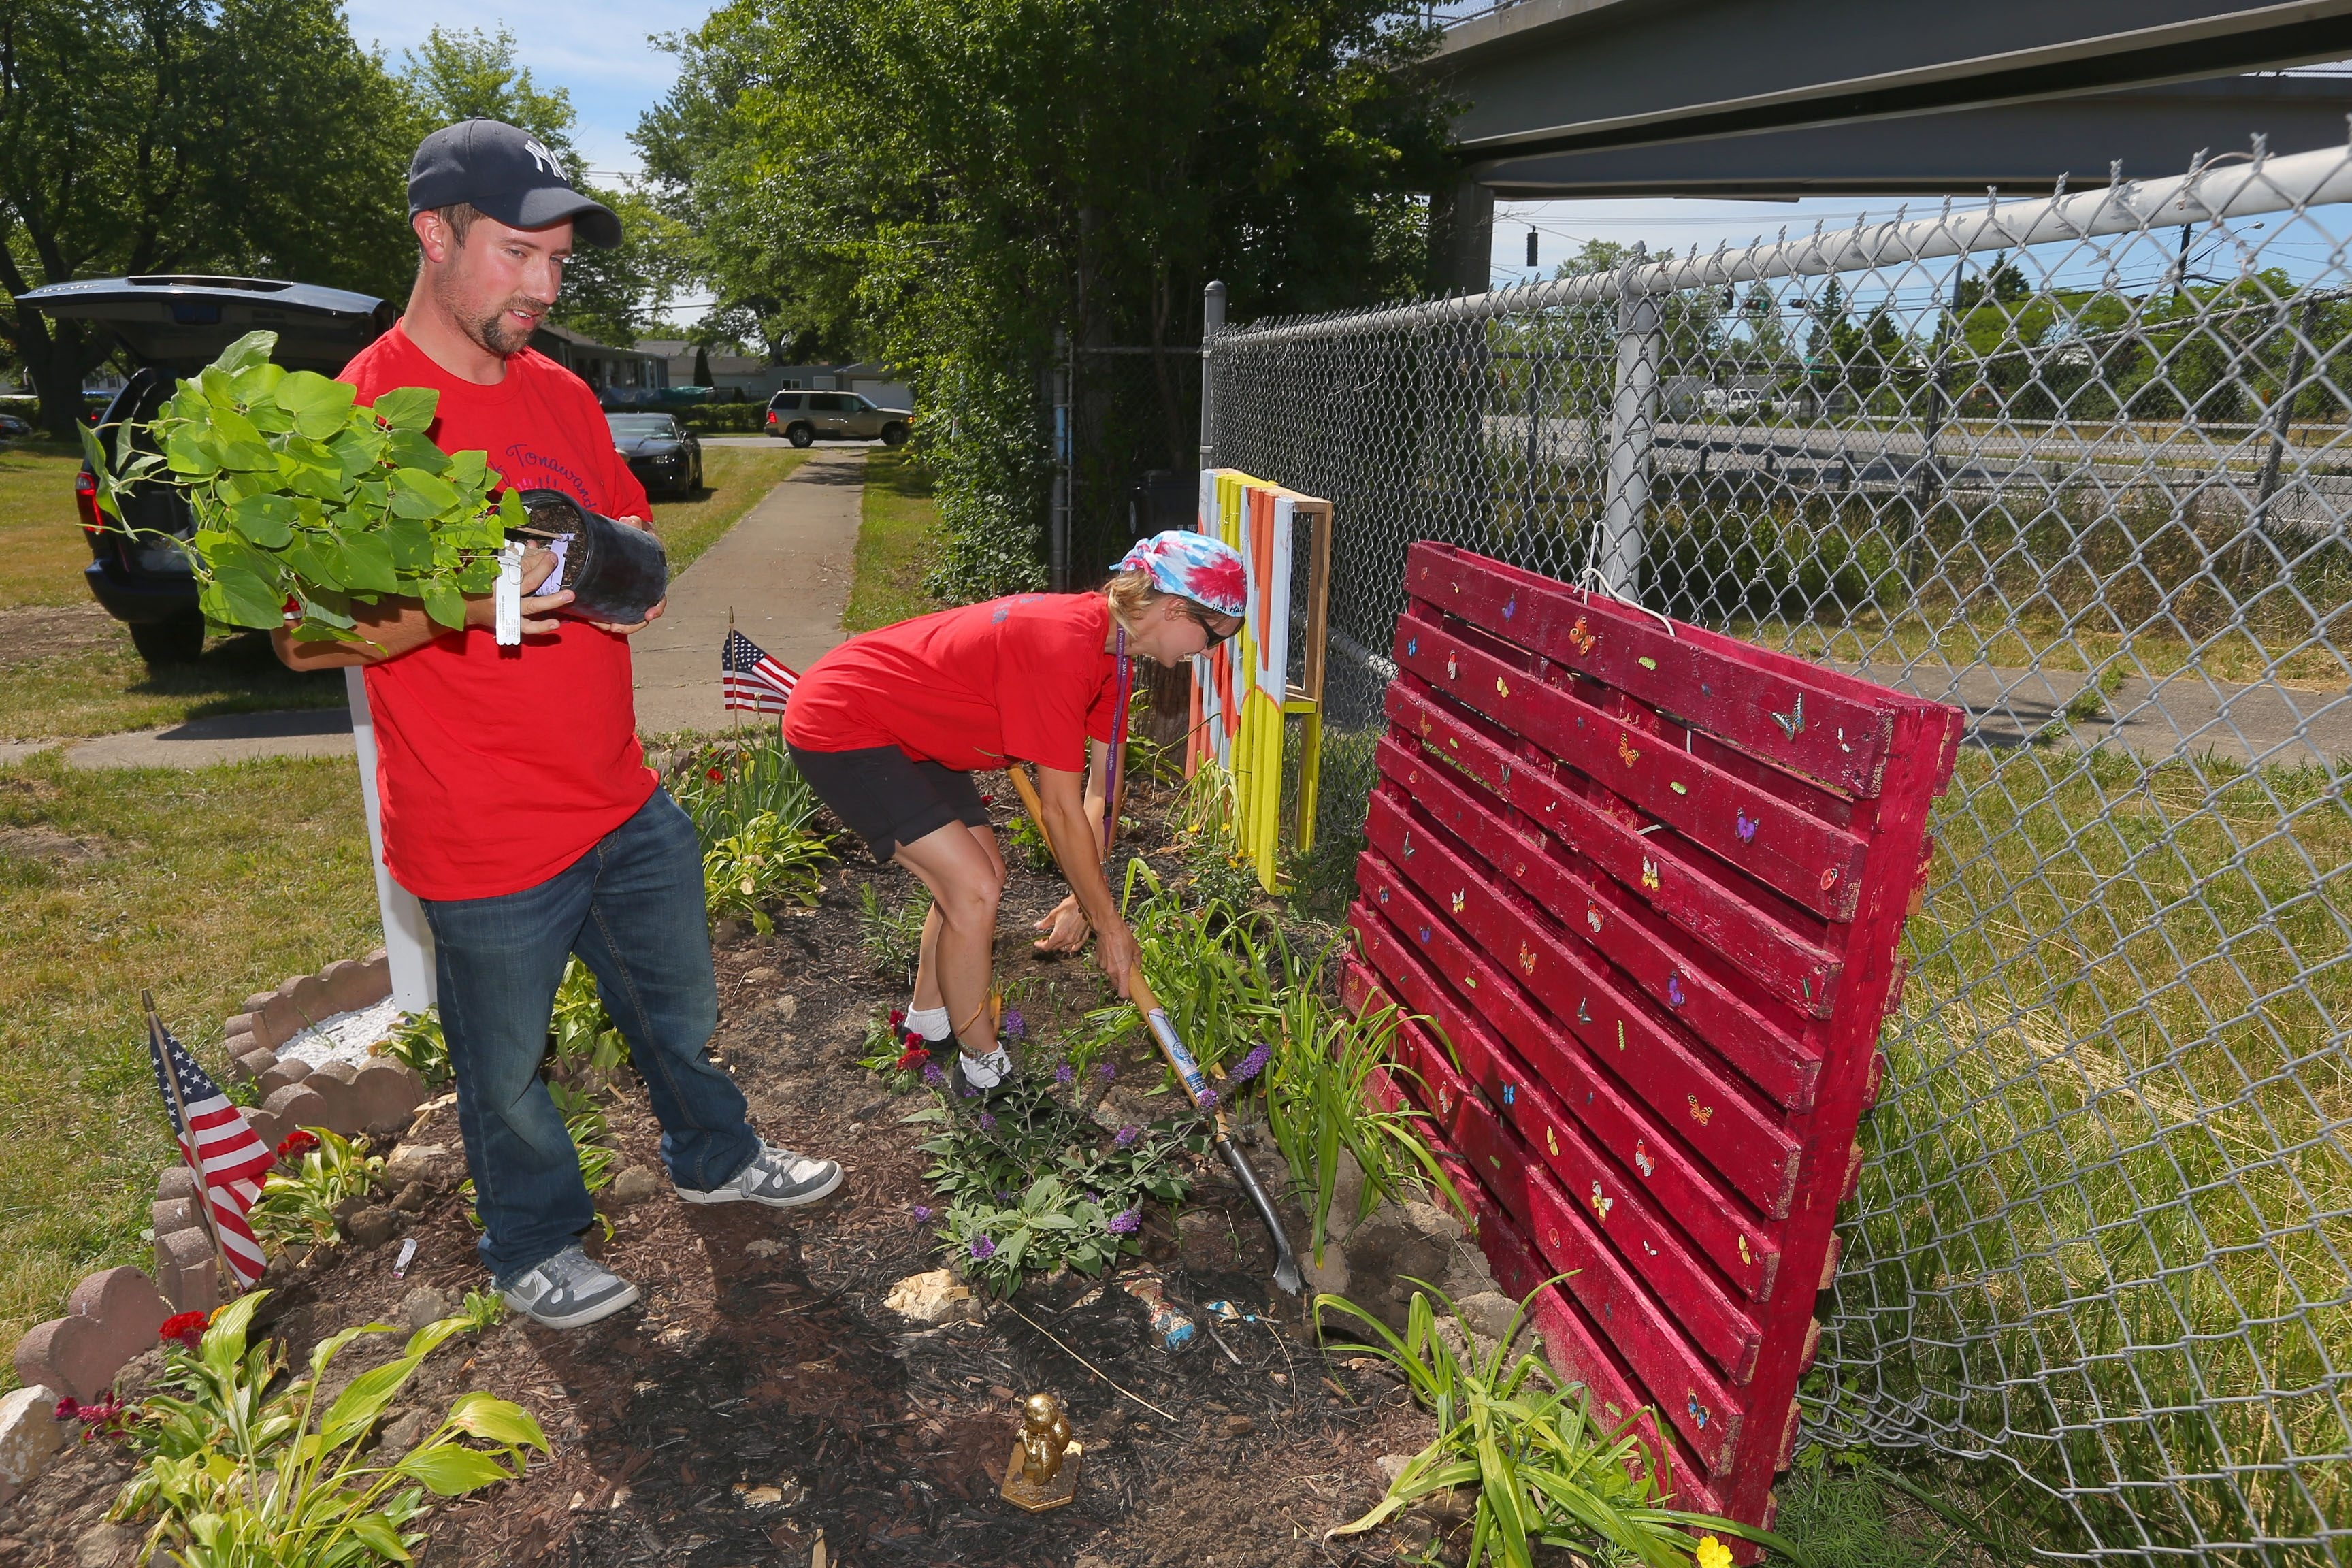 Mandy Sampson, a teacher's assistant at Riverview Elementary who started the Millstream Educational Community Gardens project, and Brian Fose, leader of the volunteer group Team Up to Clean Up, plant a Dutchman's Pipe vine.